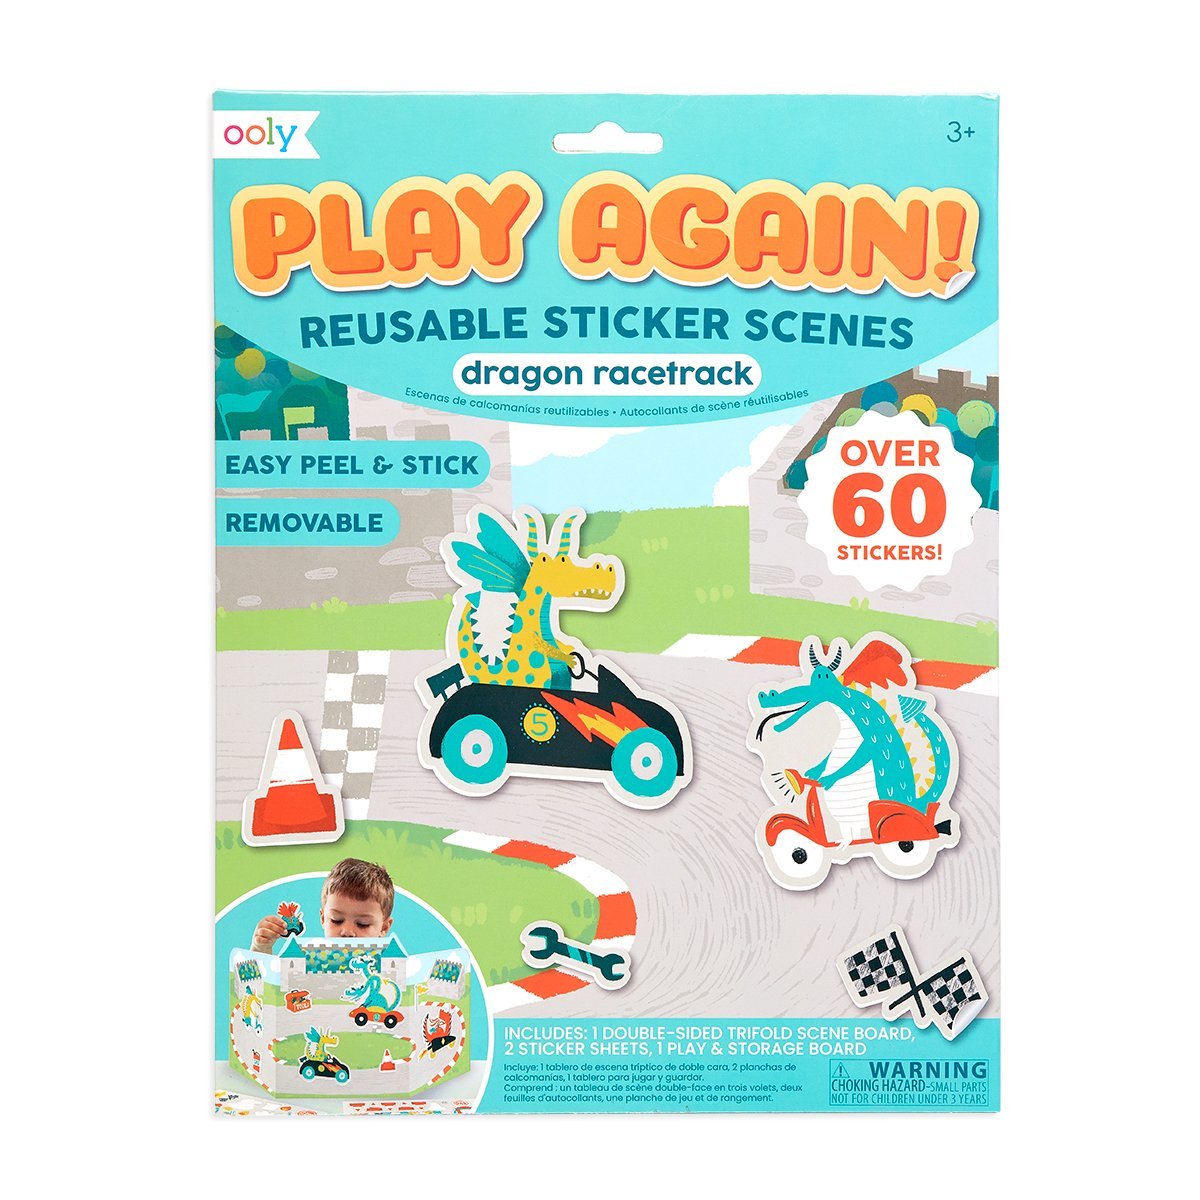 Dragon Racetrack Reusable Sticker Scenes